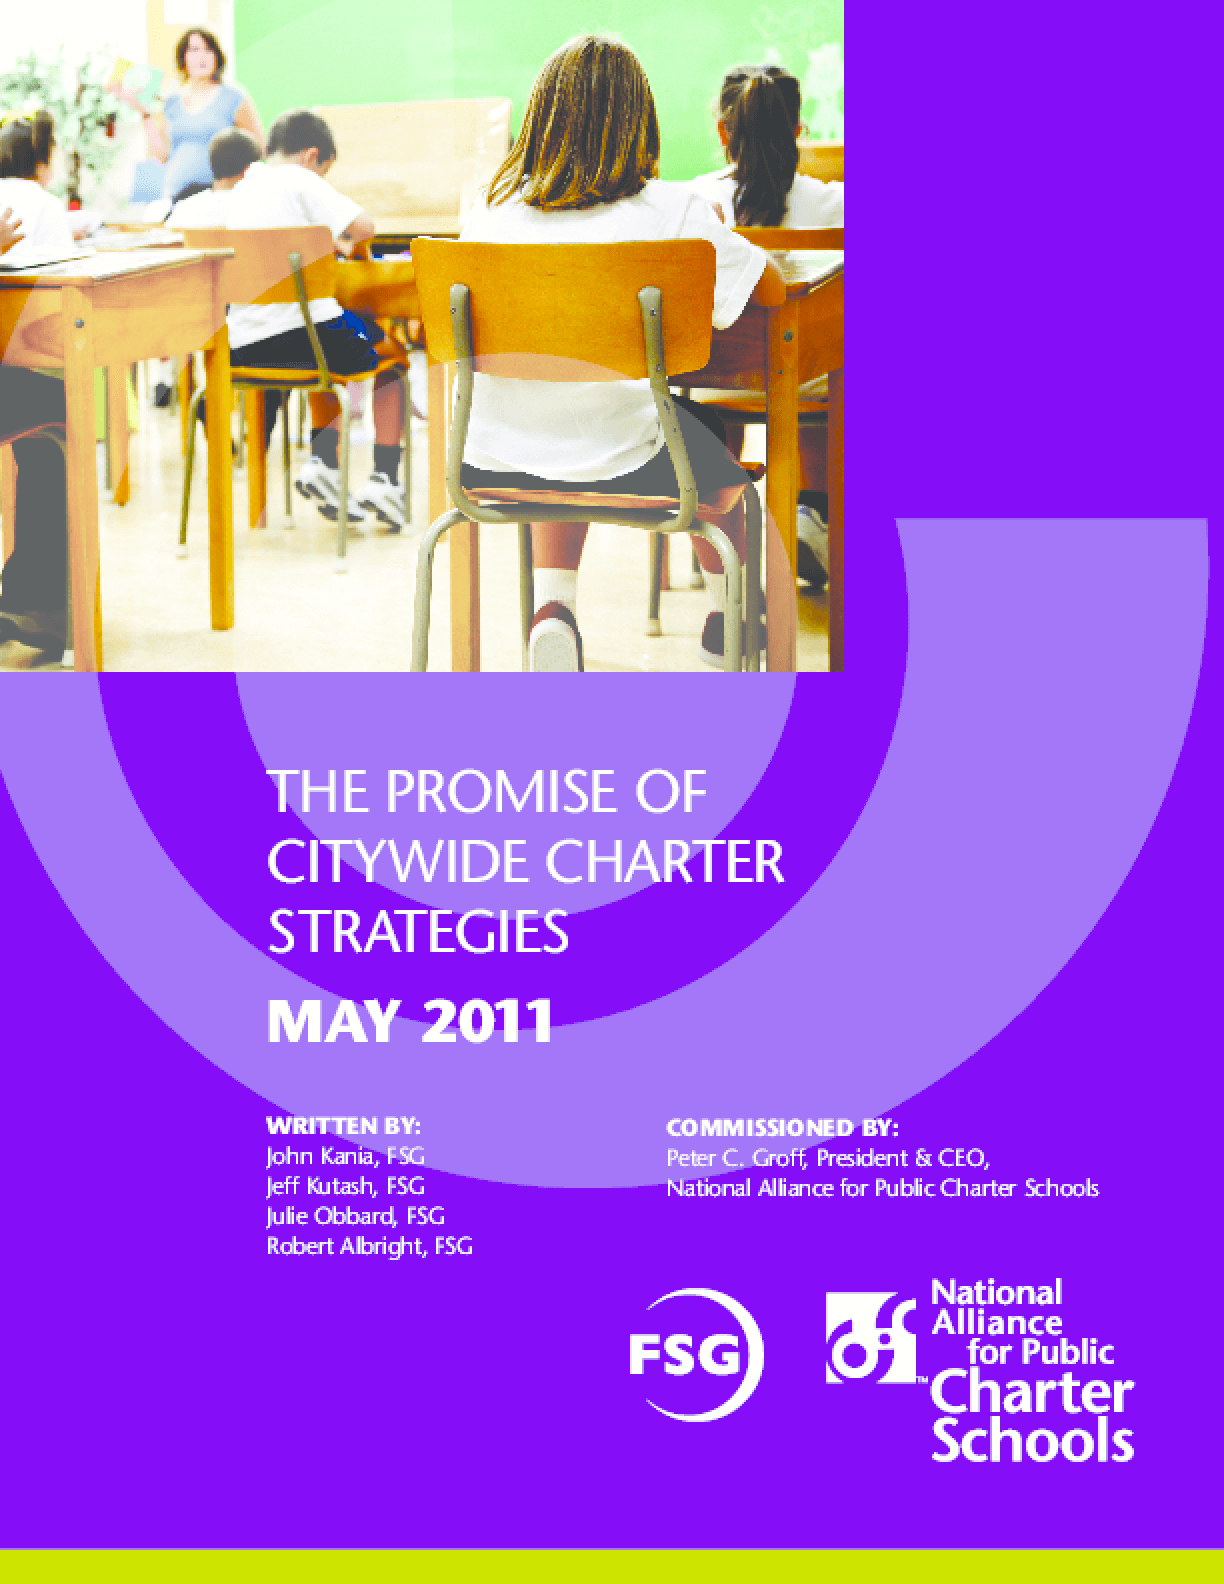 The Promise of Citywide Charter Strategies